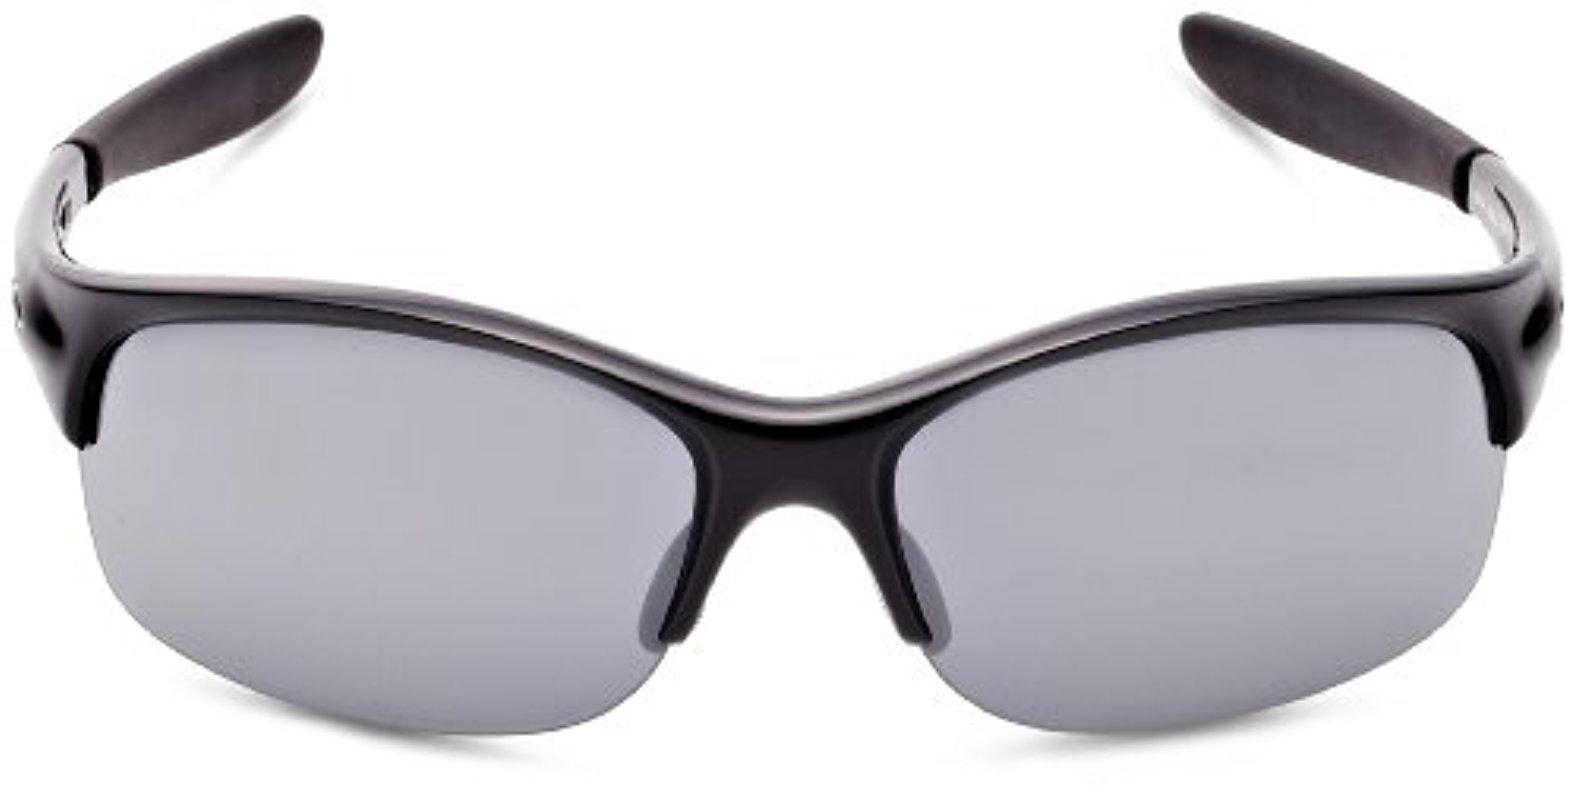 10db6b2f9ab Lyst - Oakley Commit Iridium Rimless Sunglasses in Black for Men